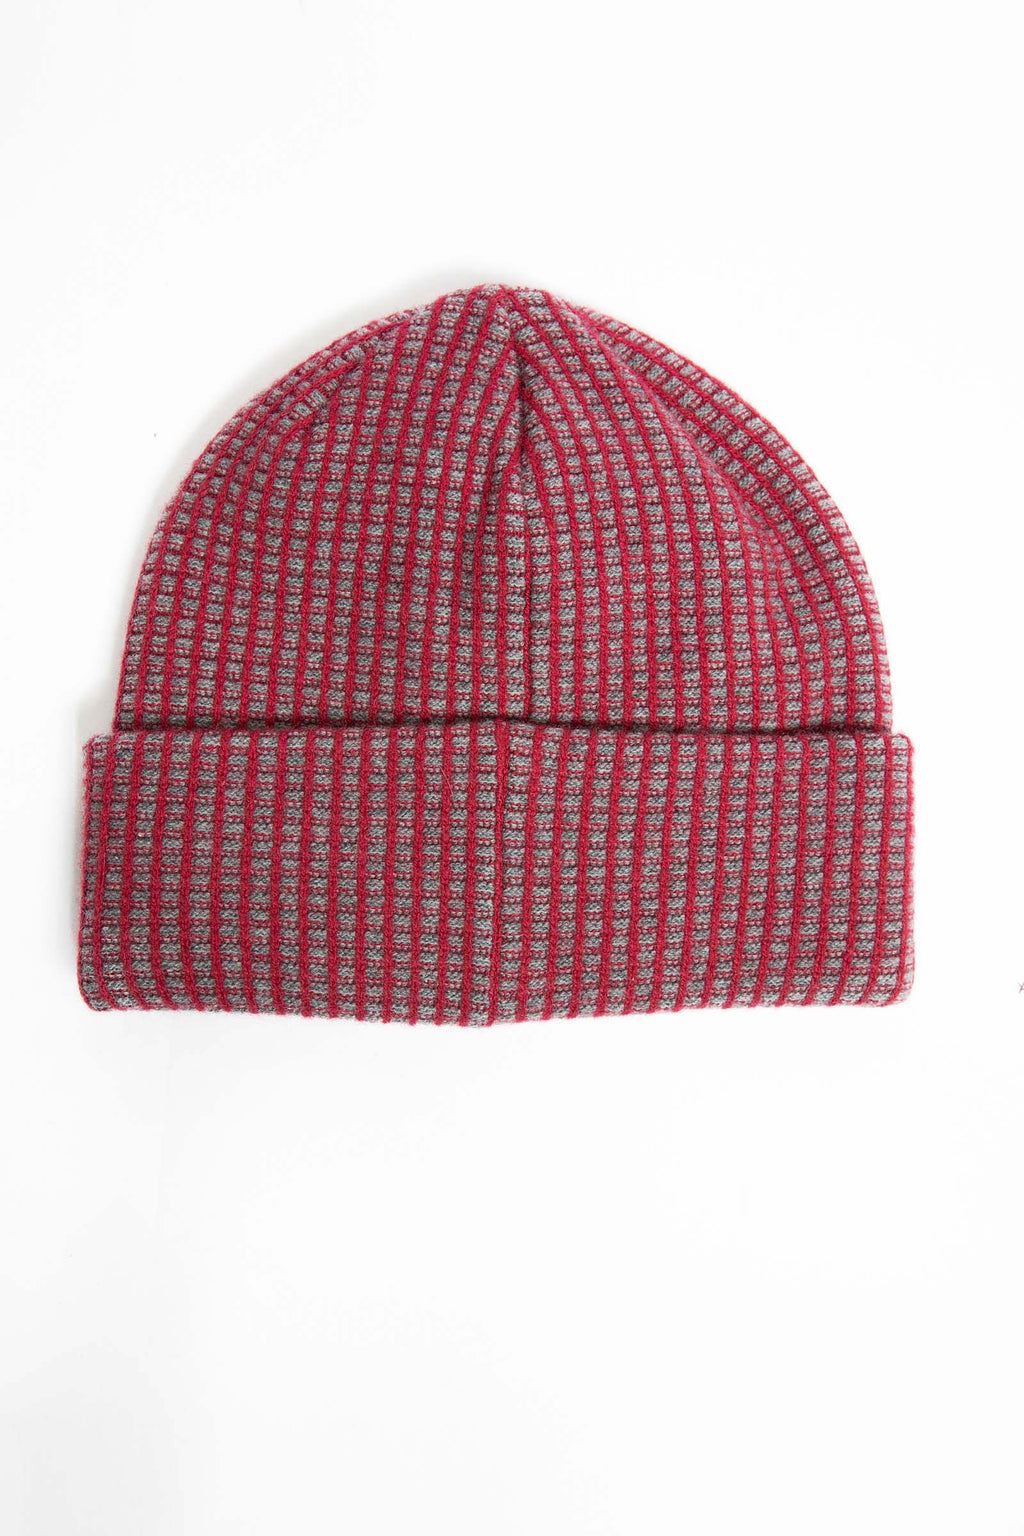 I.S.M. 'Reds A Winner' Red Cashmere Beanie